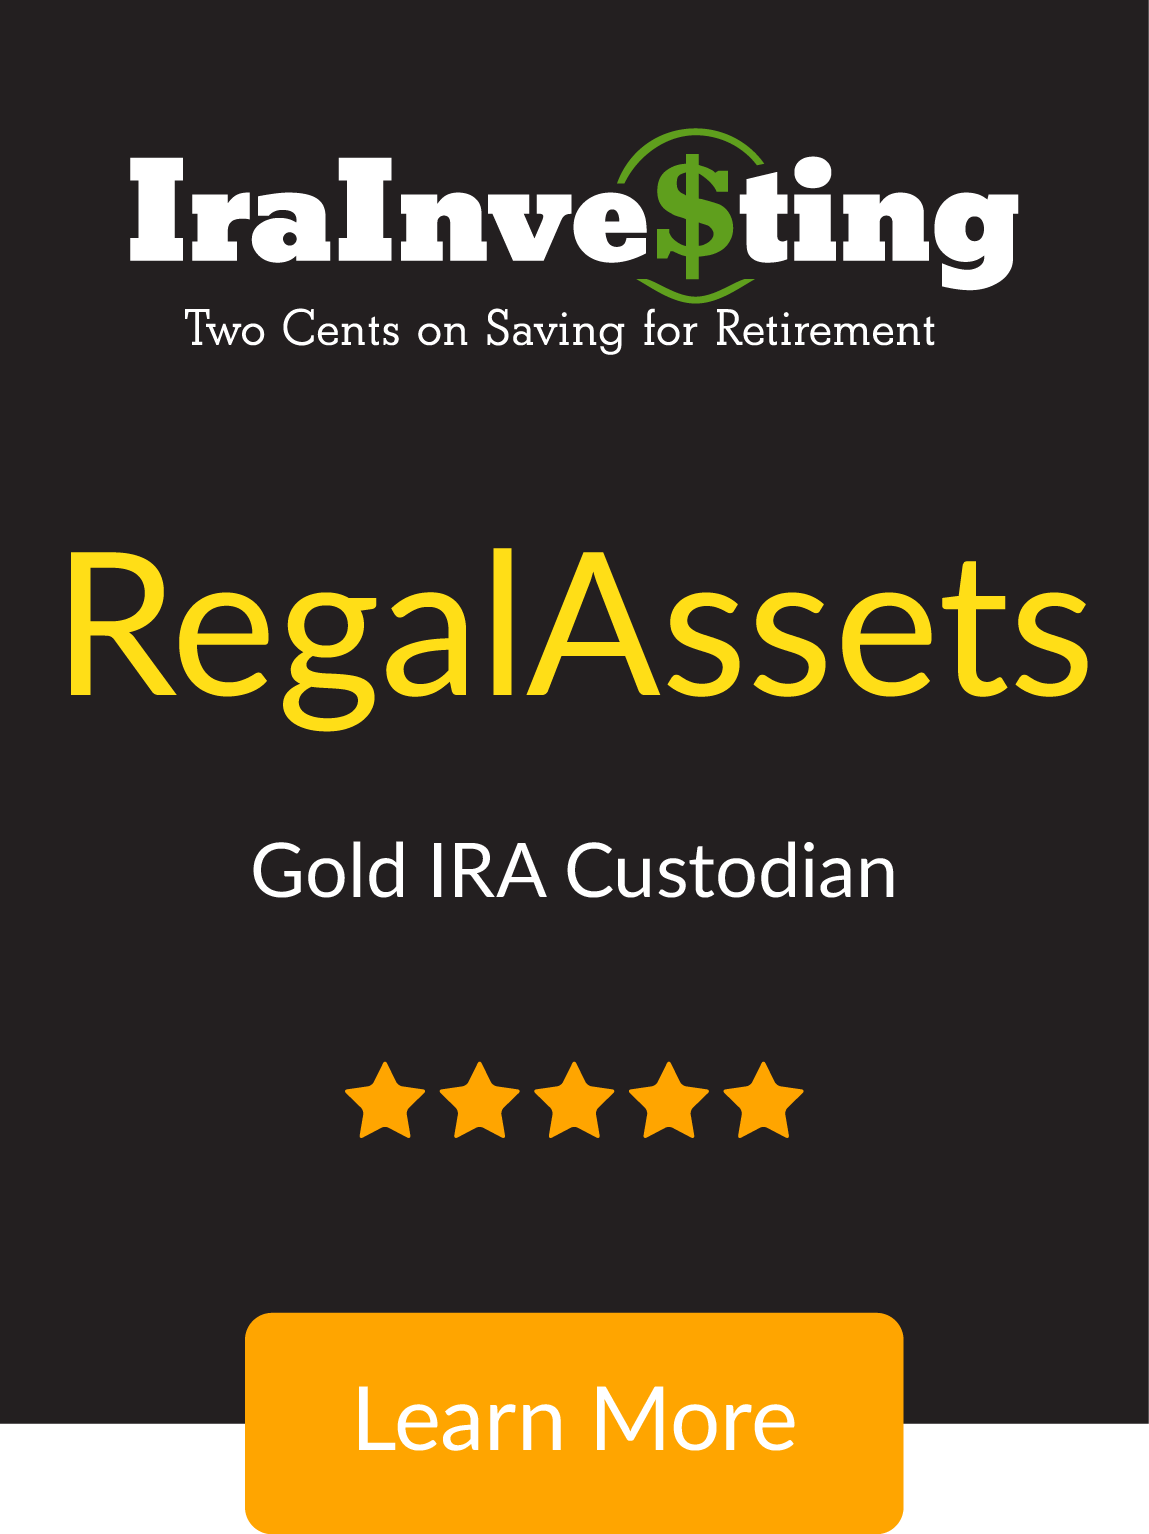 IRAInvesting Regal Assets